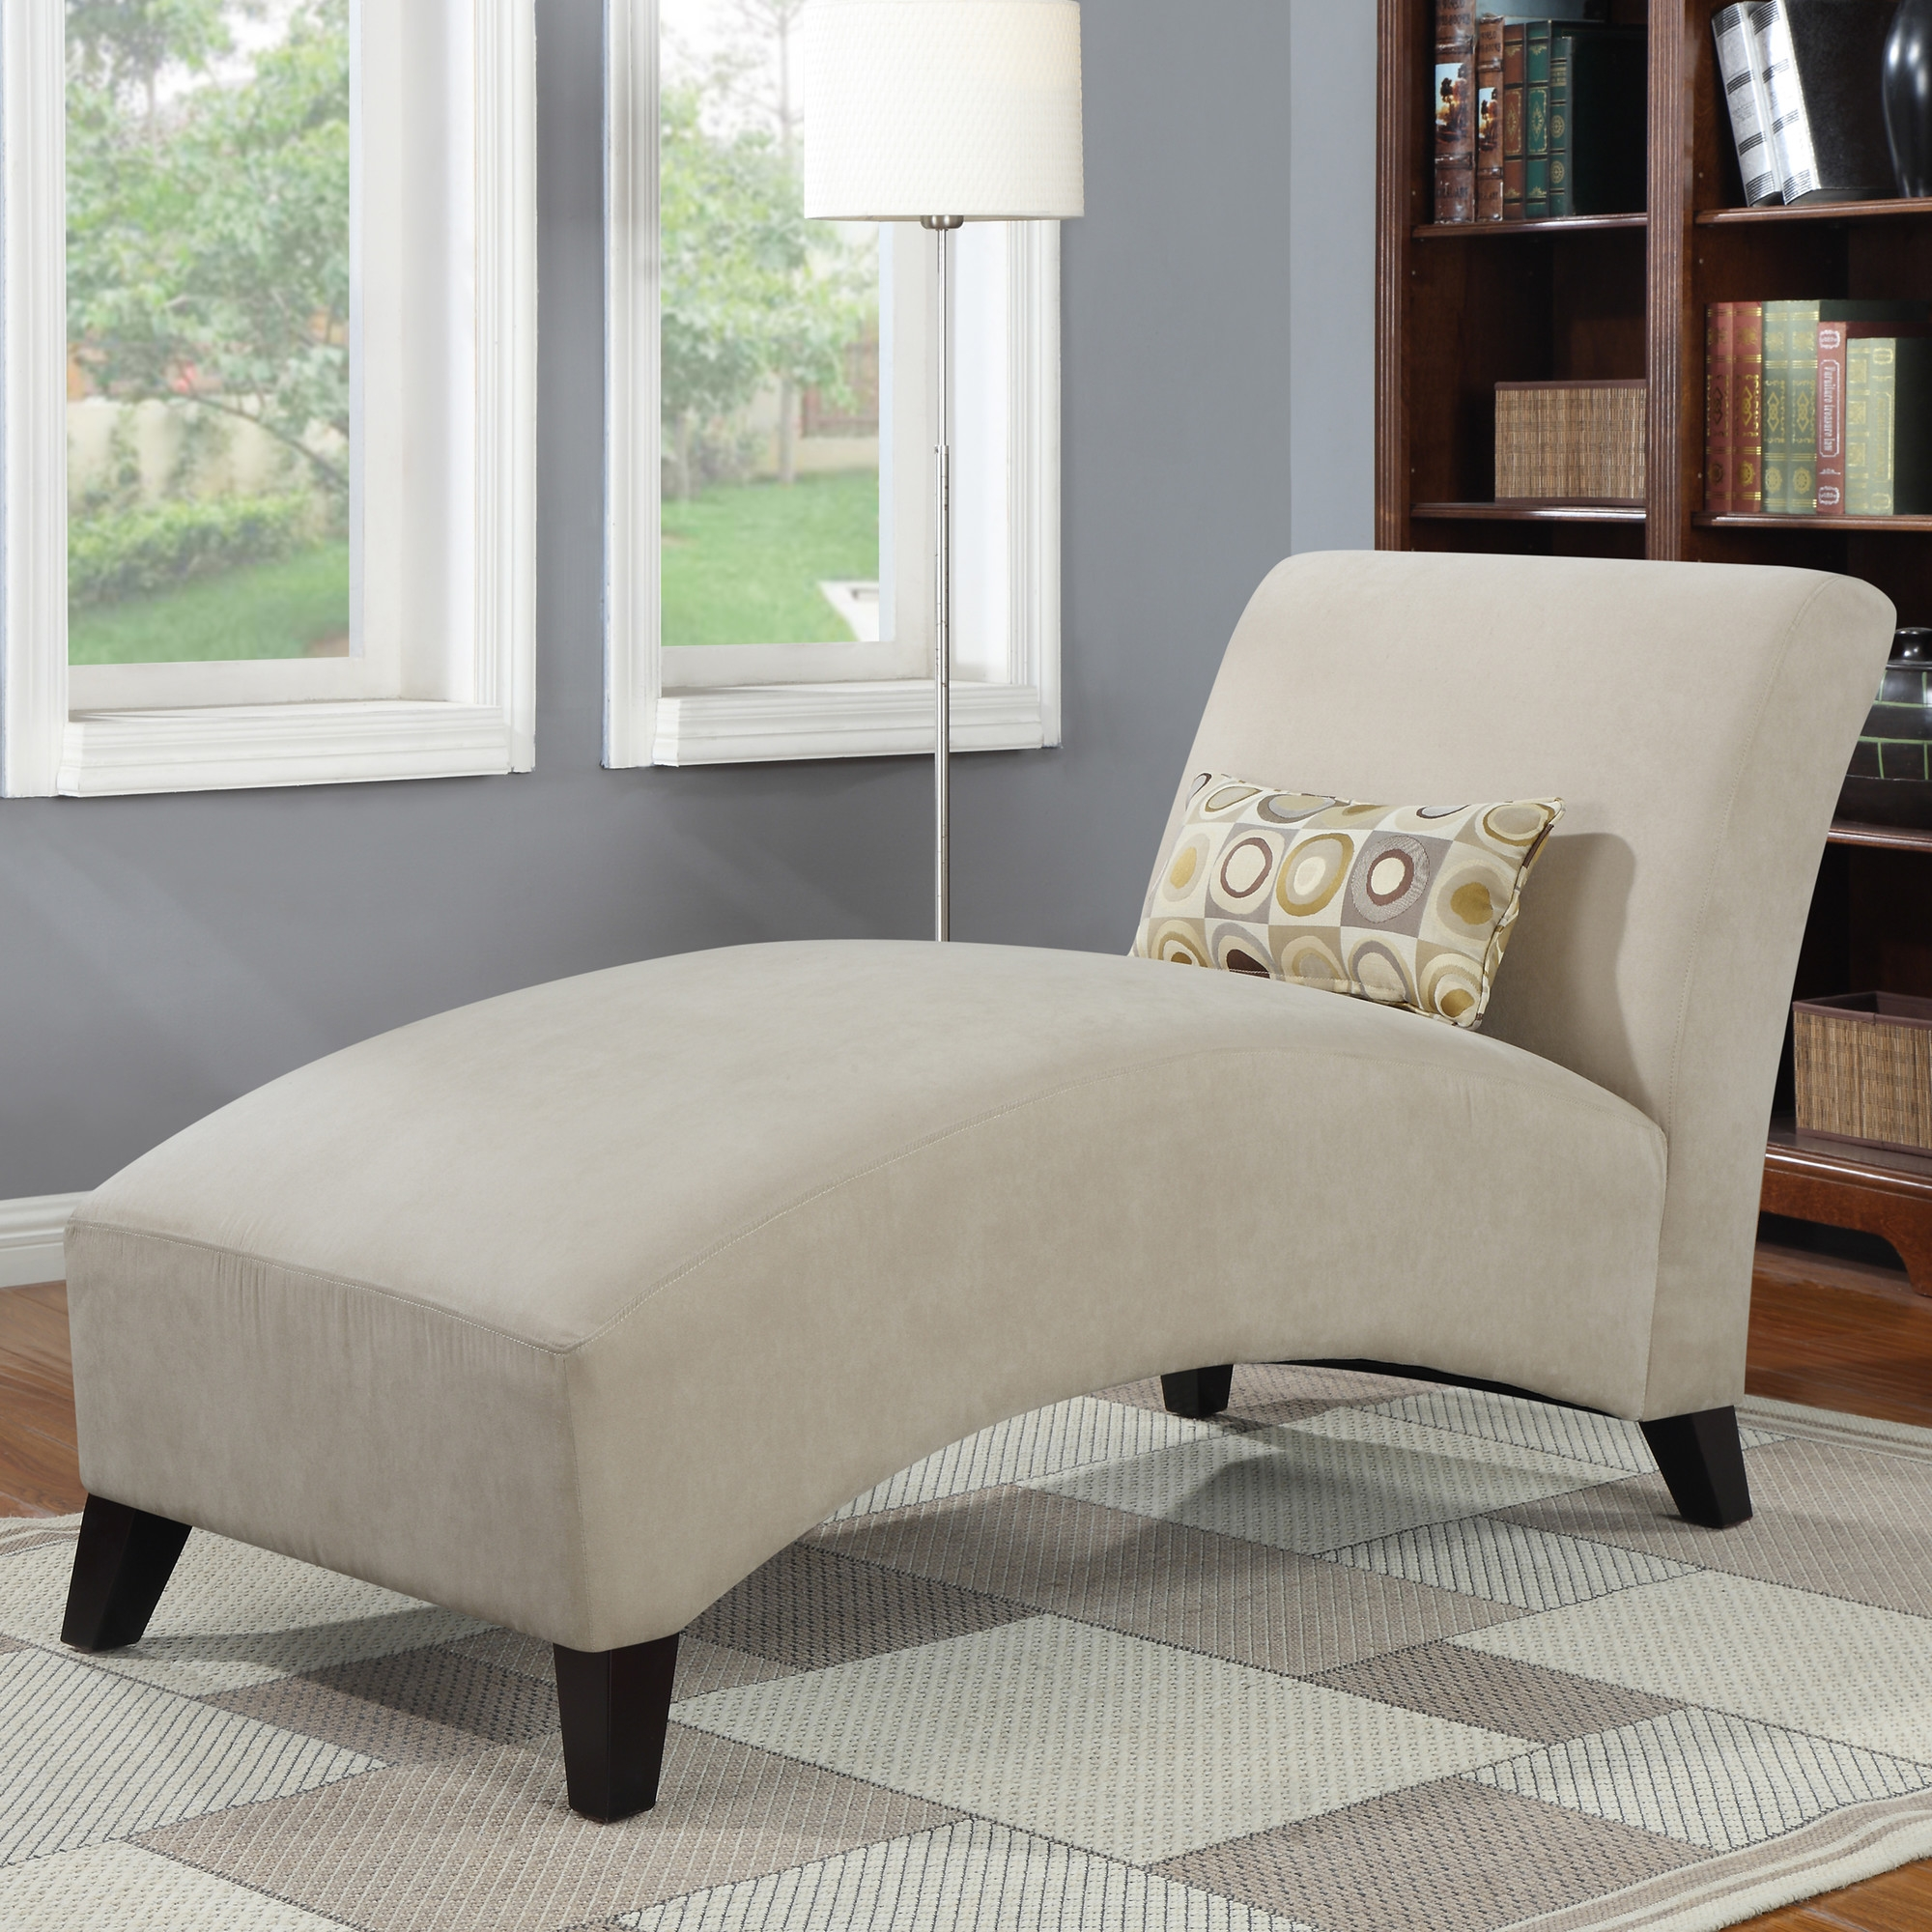 Furniture Microfiber Chaise Lounge For Comfortable Sofa Design With Regard To Bedroom Sofa Chairs (View 6 of 15)